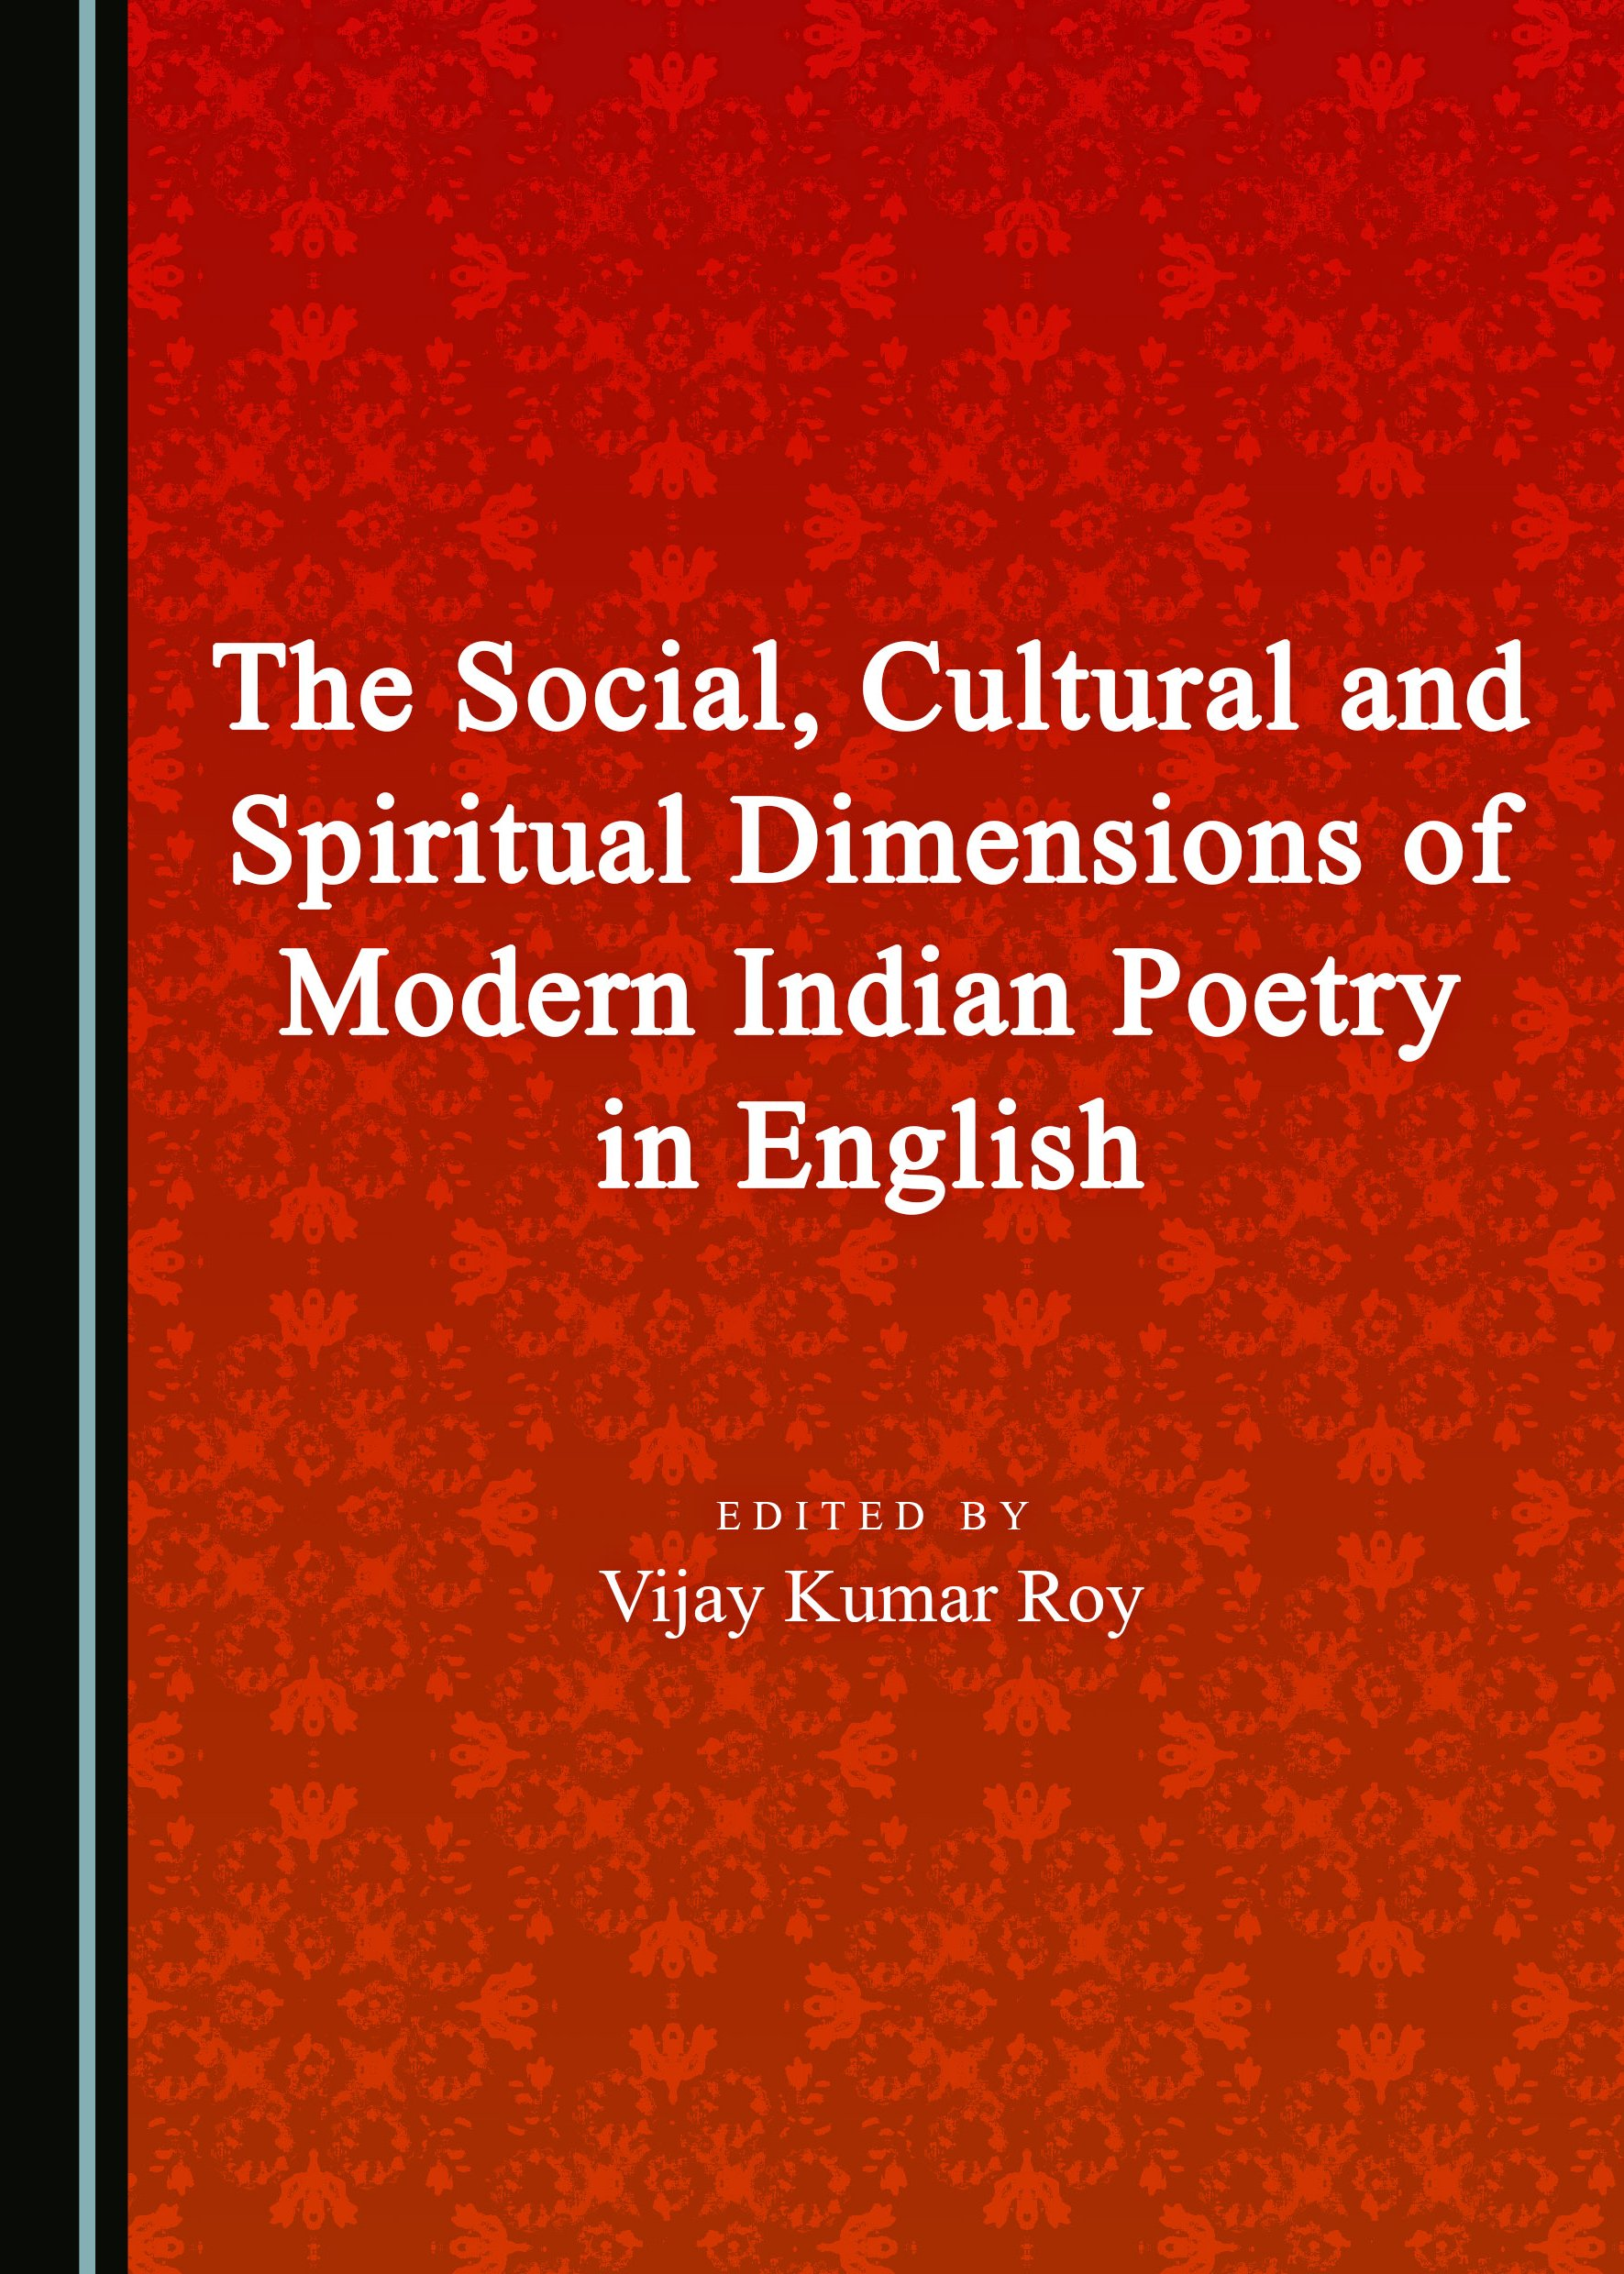 The Social, Cultural and Spiritual Dimensions of Modern Indian Poetry in English